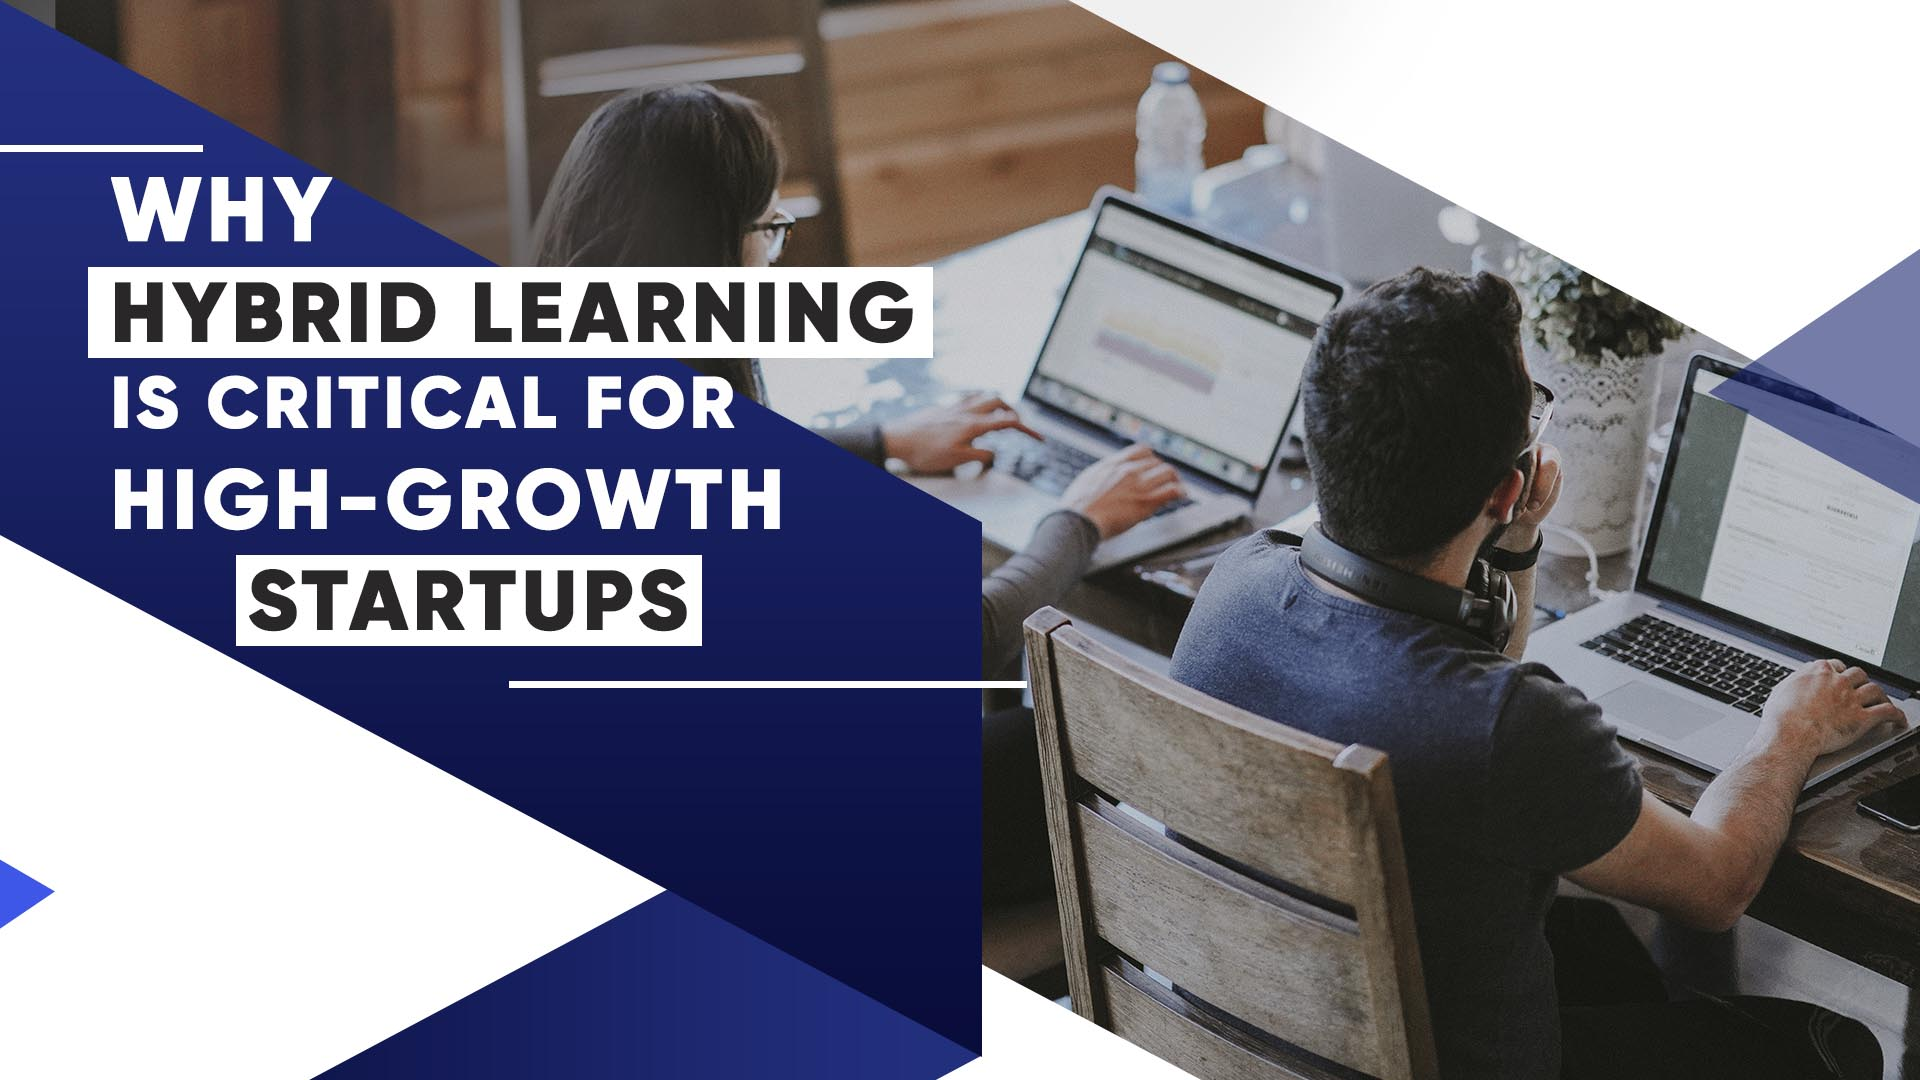 Why Hybrid Learning Is Critical For High-Growth Startups